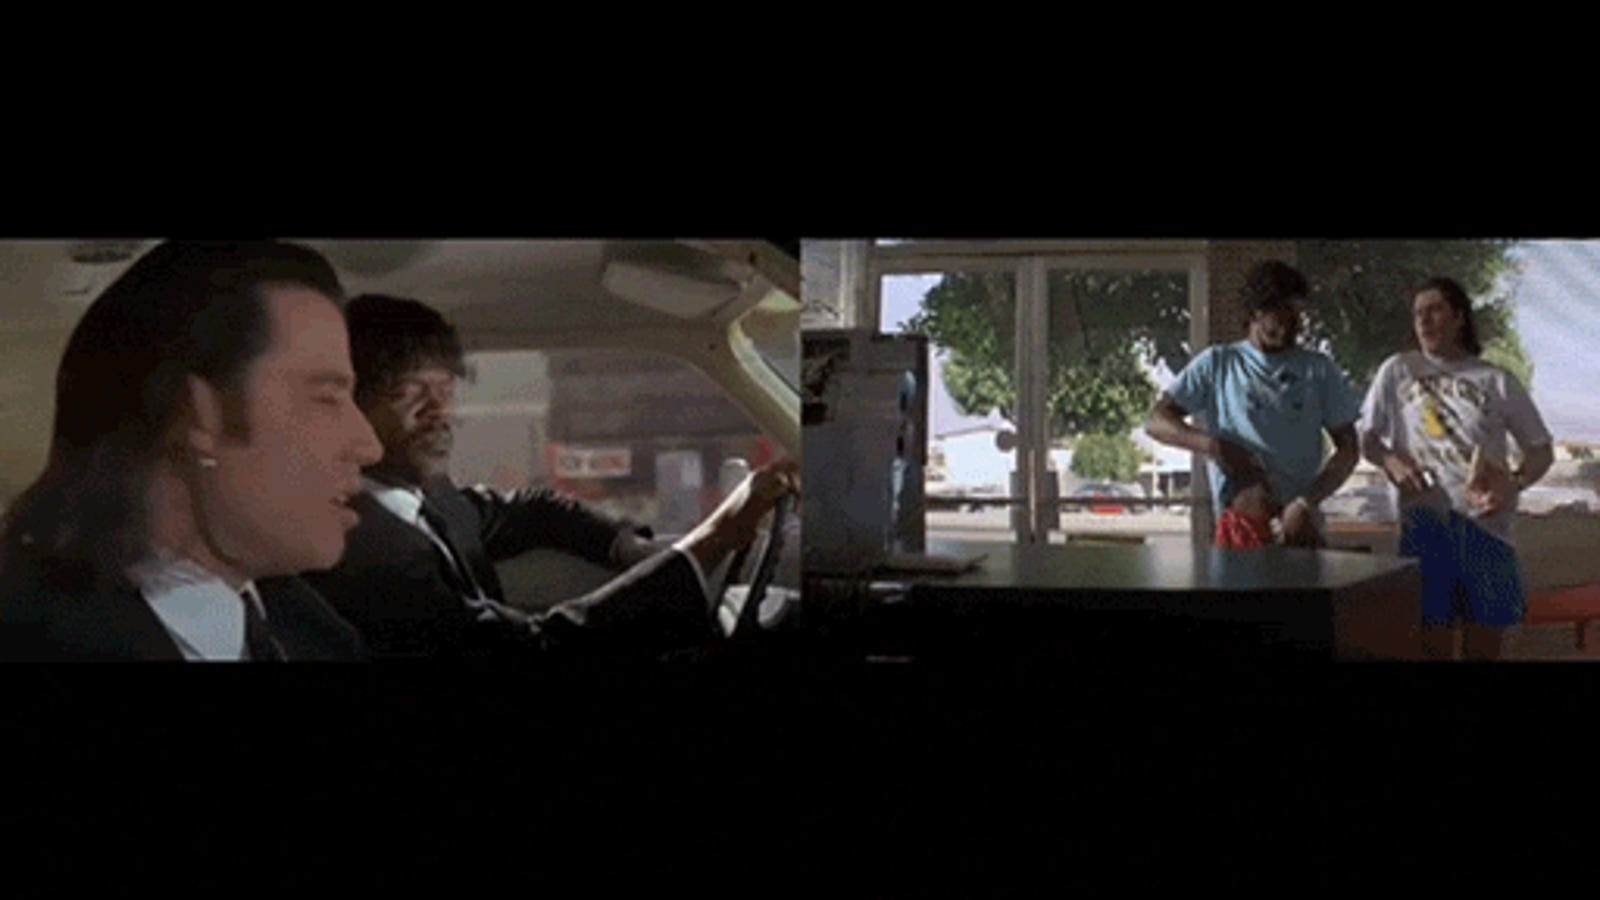 Quentin Tarantino's Characters Enter and Exit Side-By-Side in This Entertaining Edit